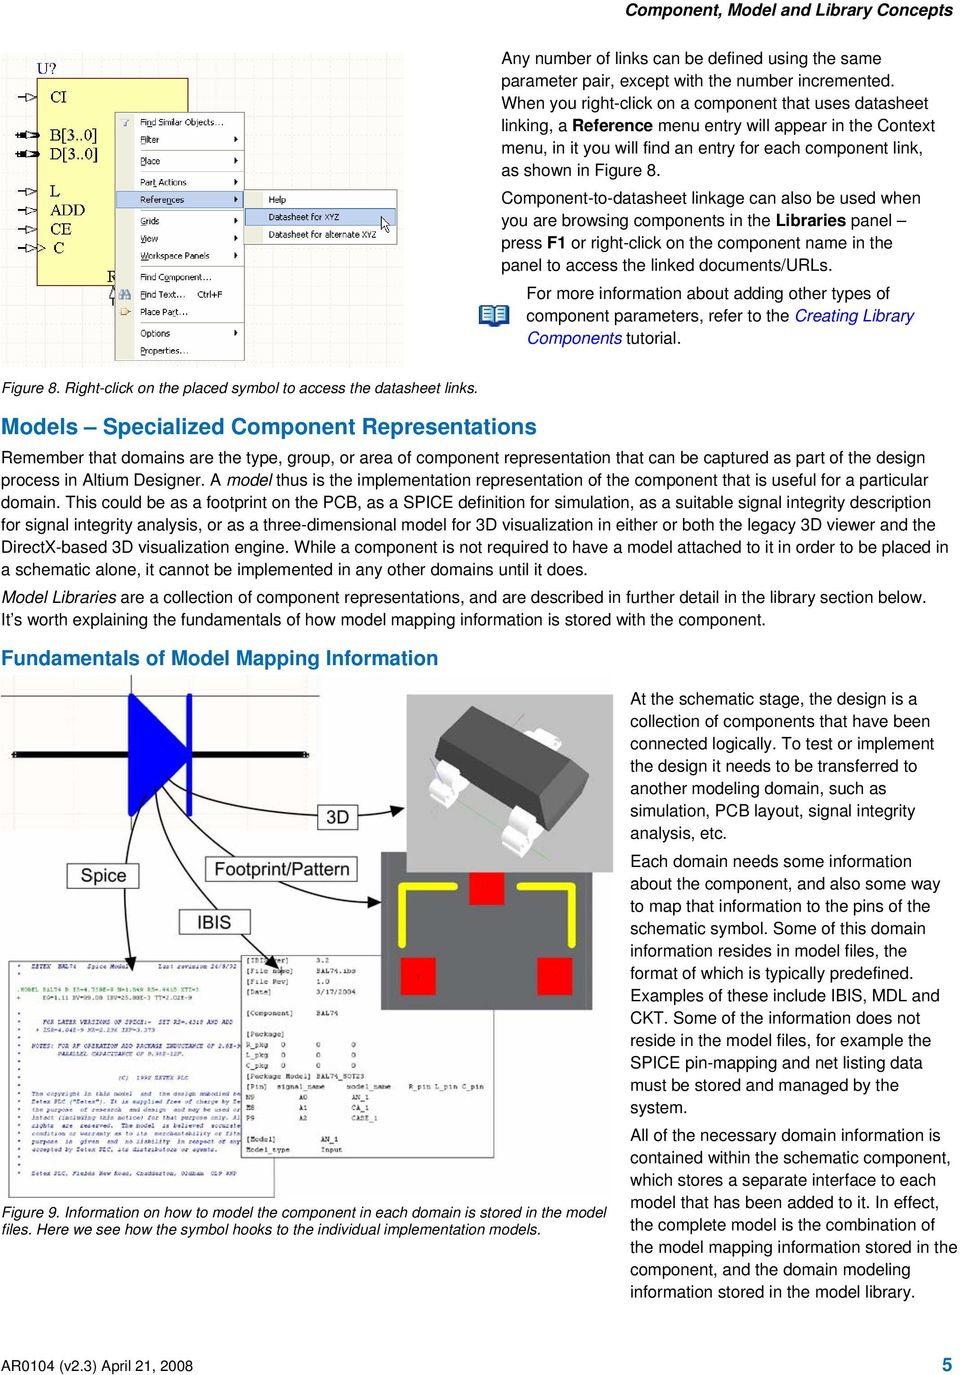 Component-to-datasheet linkage can also be used when you are browsing components in the Libraries panel press F1 or right-click on the component name in the panel to access the linked documents/urls.